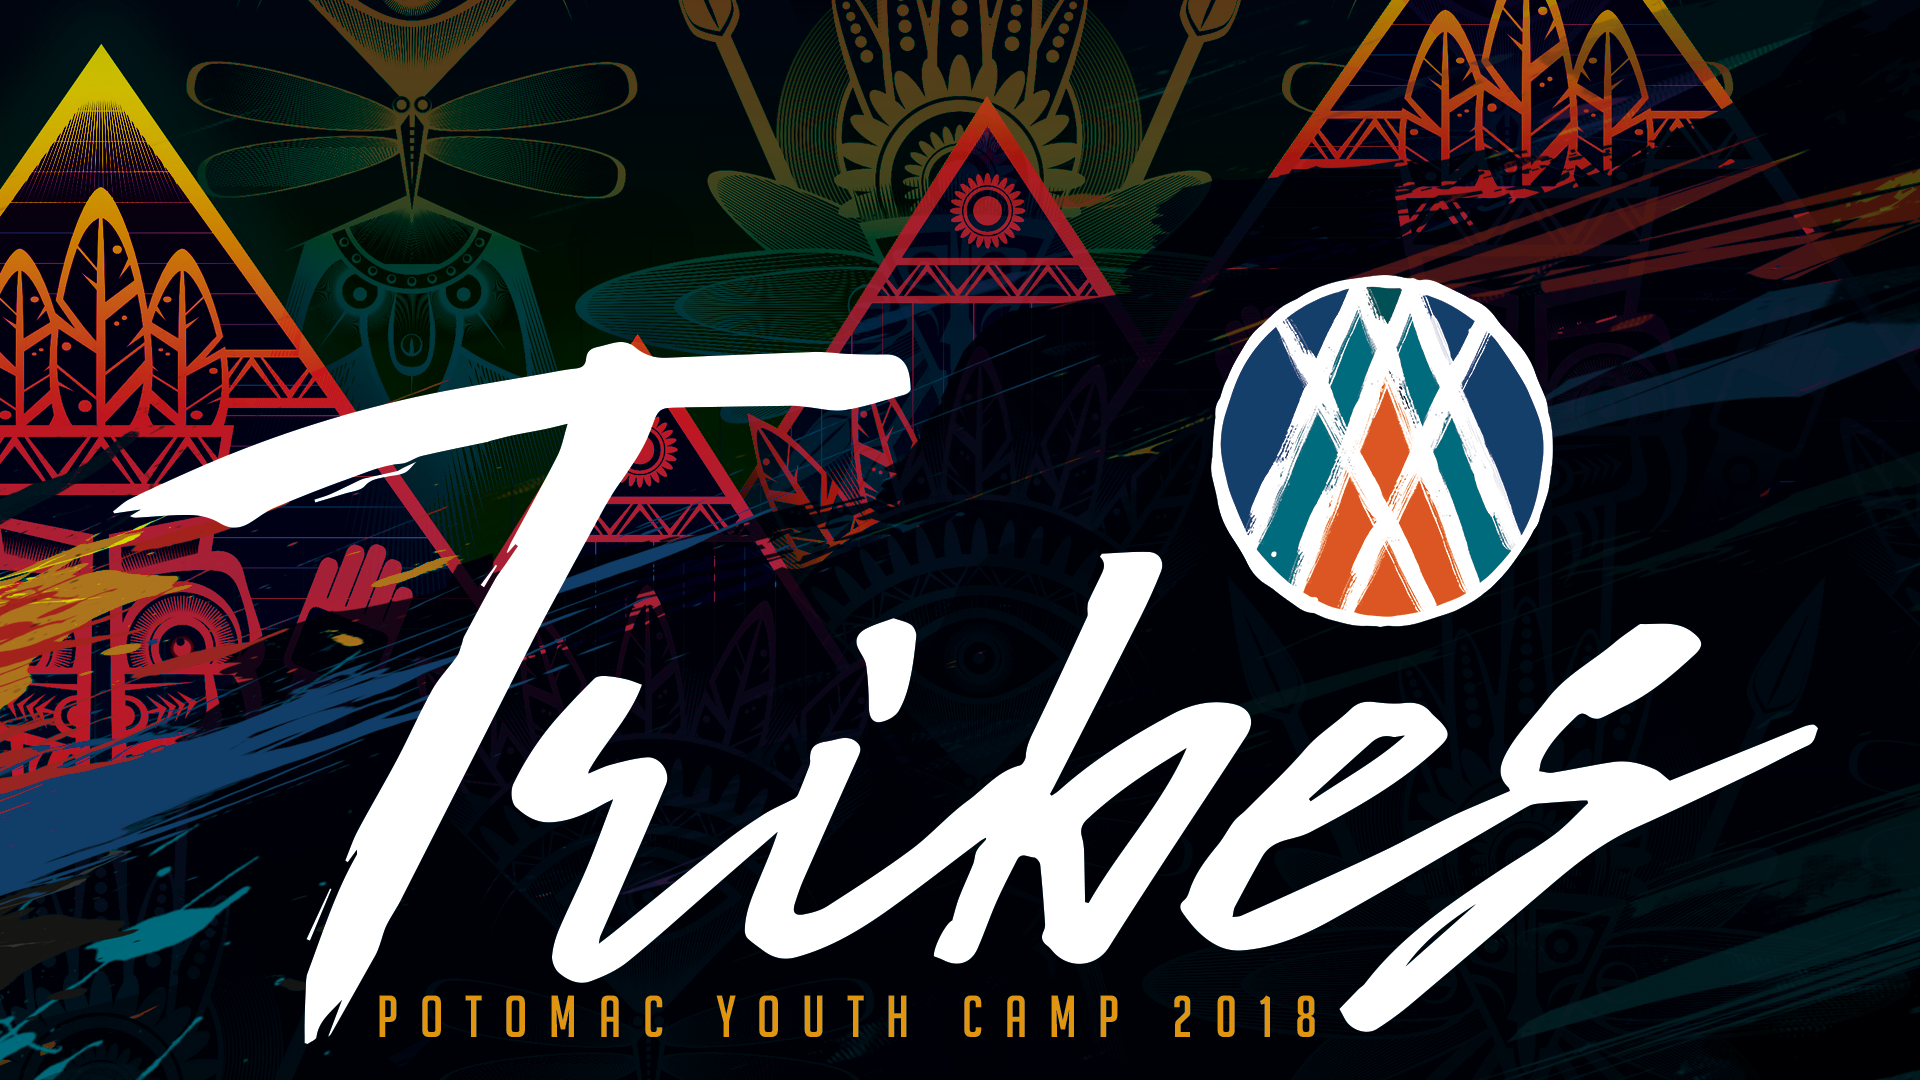 Youth camp 18 1